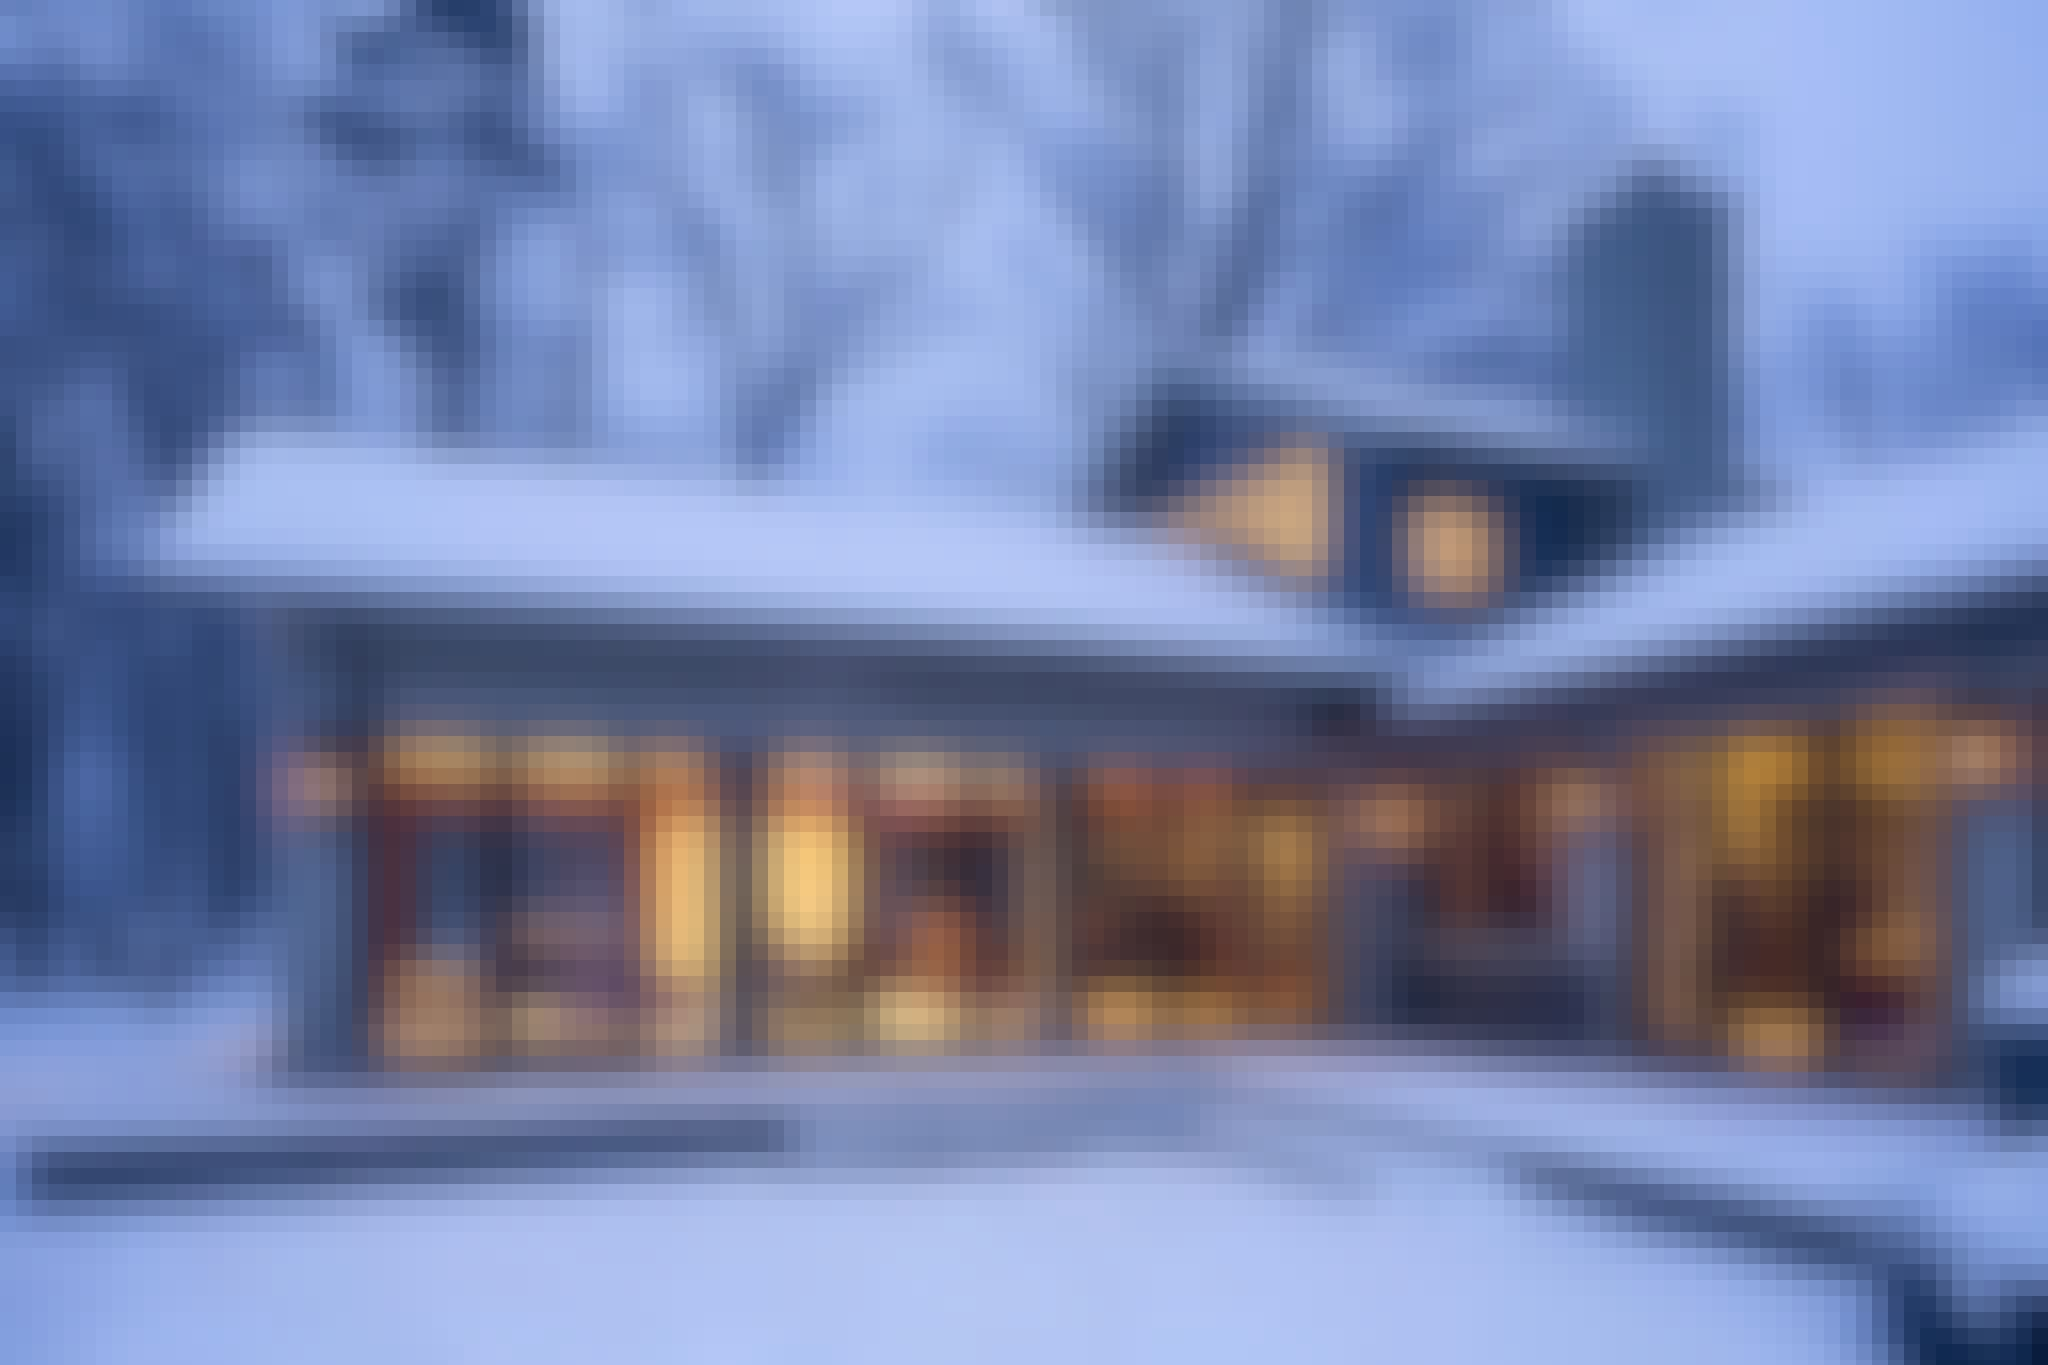 insulated glass walls in the snow